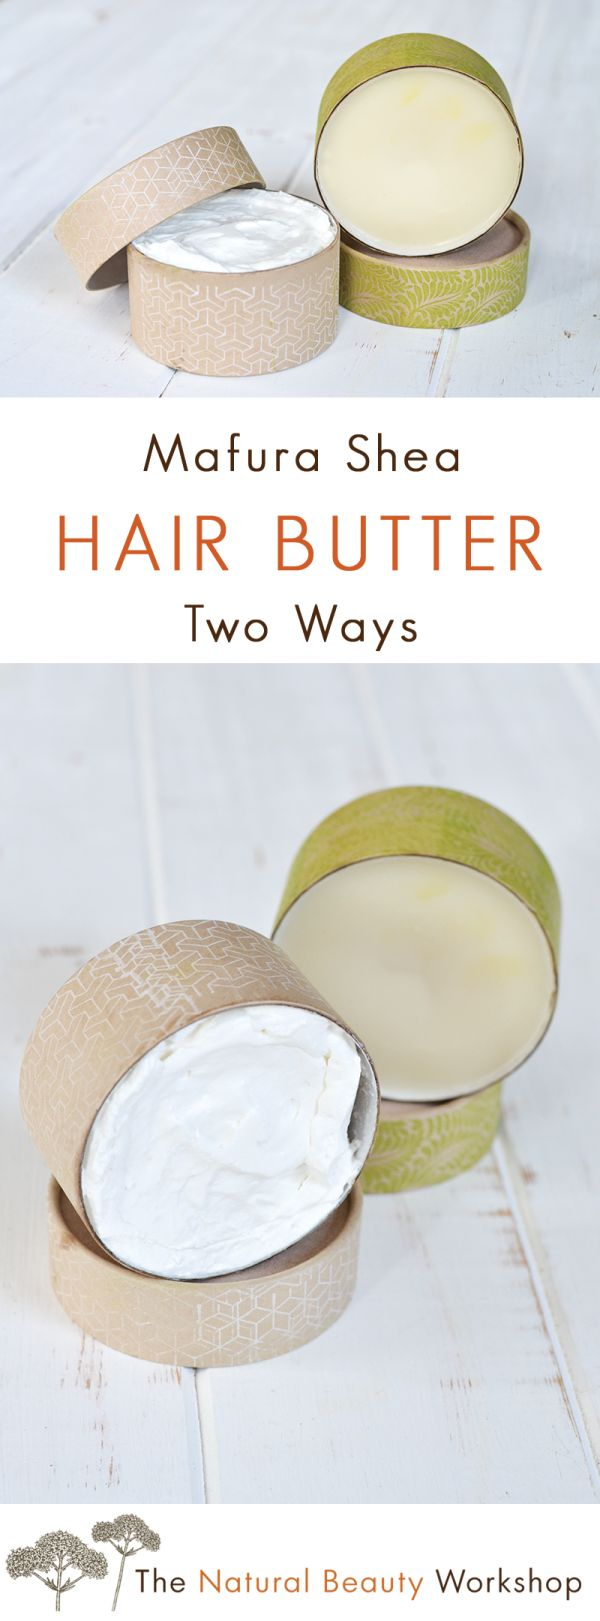 Shea Mafura Whipped Hair Butter Recipe! Two simple recipes for pomade and hair butter made with mafura oil and shea butter.